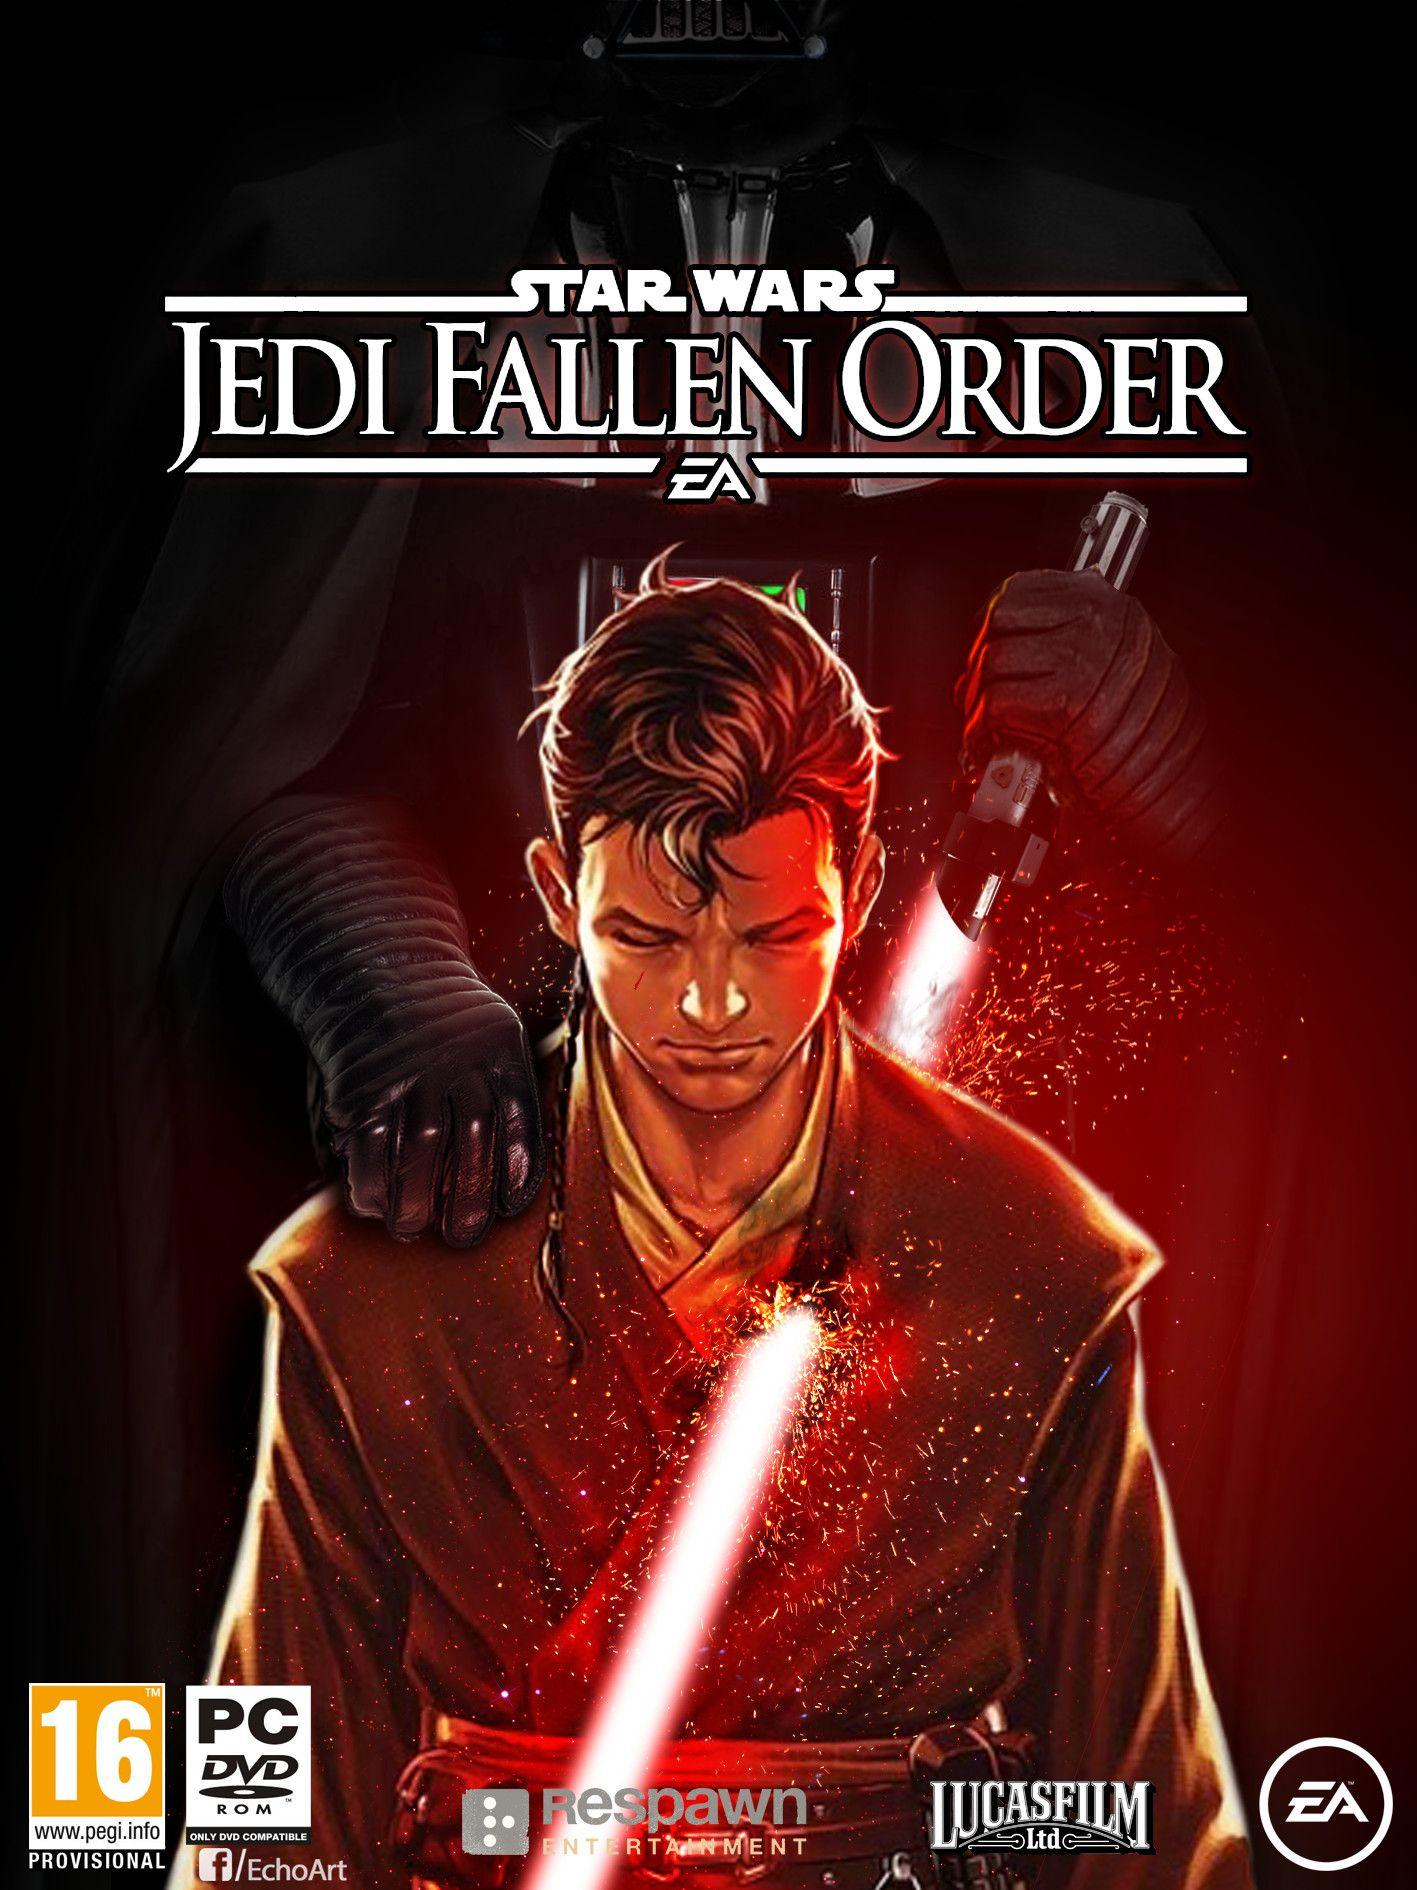 Star Wars Jedi Fallen Order Wallpapers Wallpaper Cave